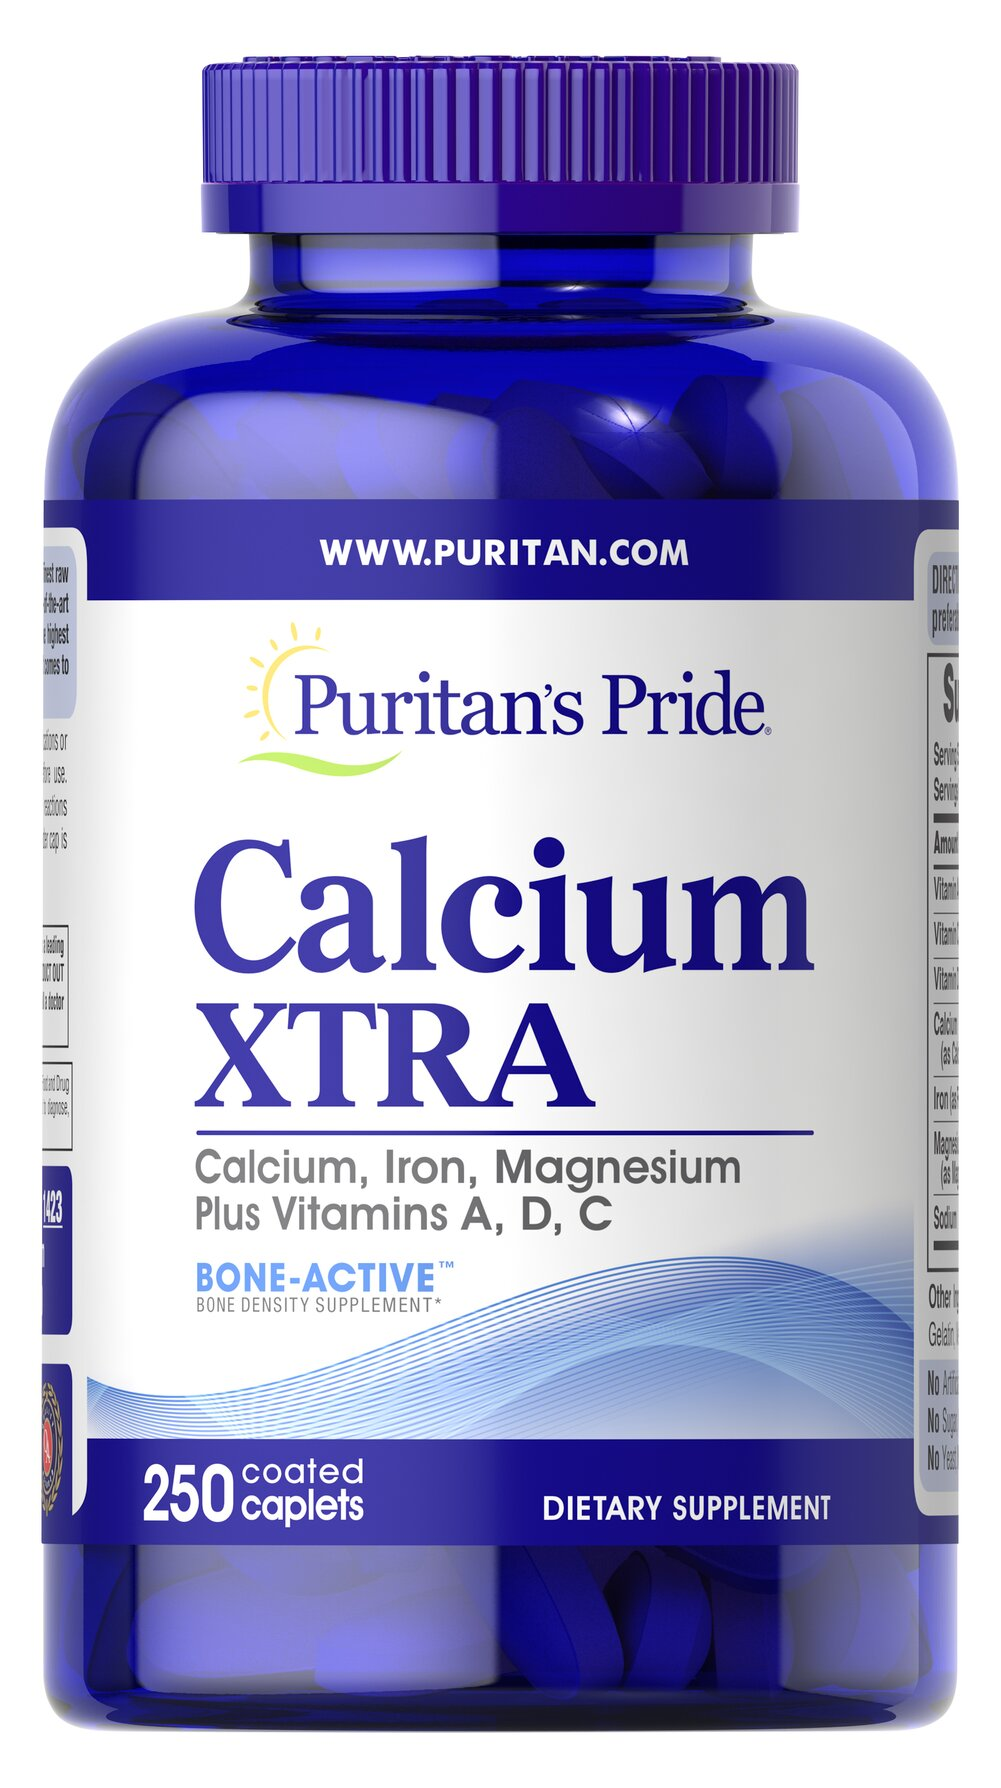 Calcium Xtra <p>Calcium is essential for building healthy bones and teeth.**  To be sure you are getting enough calcium, try Calcium Xtra tablets.  You get natural calcium plus added vitamins (vitamins A, C and D) and minerals (Iron and Magnesium) that work synergistically to give you maximum nutritional protection - in a NEW faster-acting formula.</p> 250 Caplets  $20.99